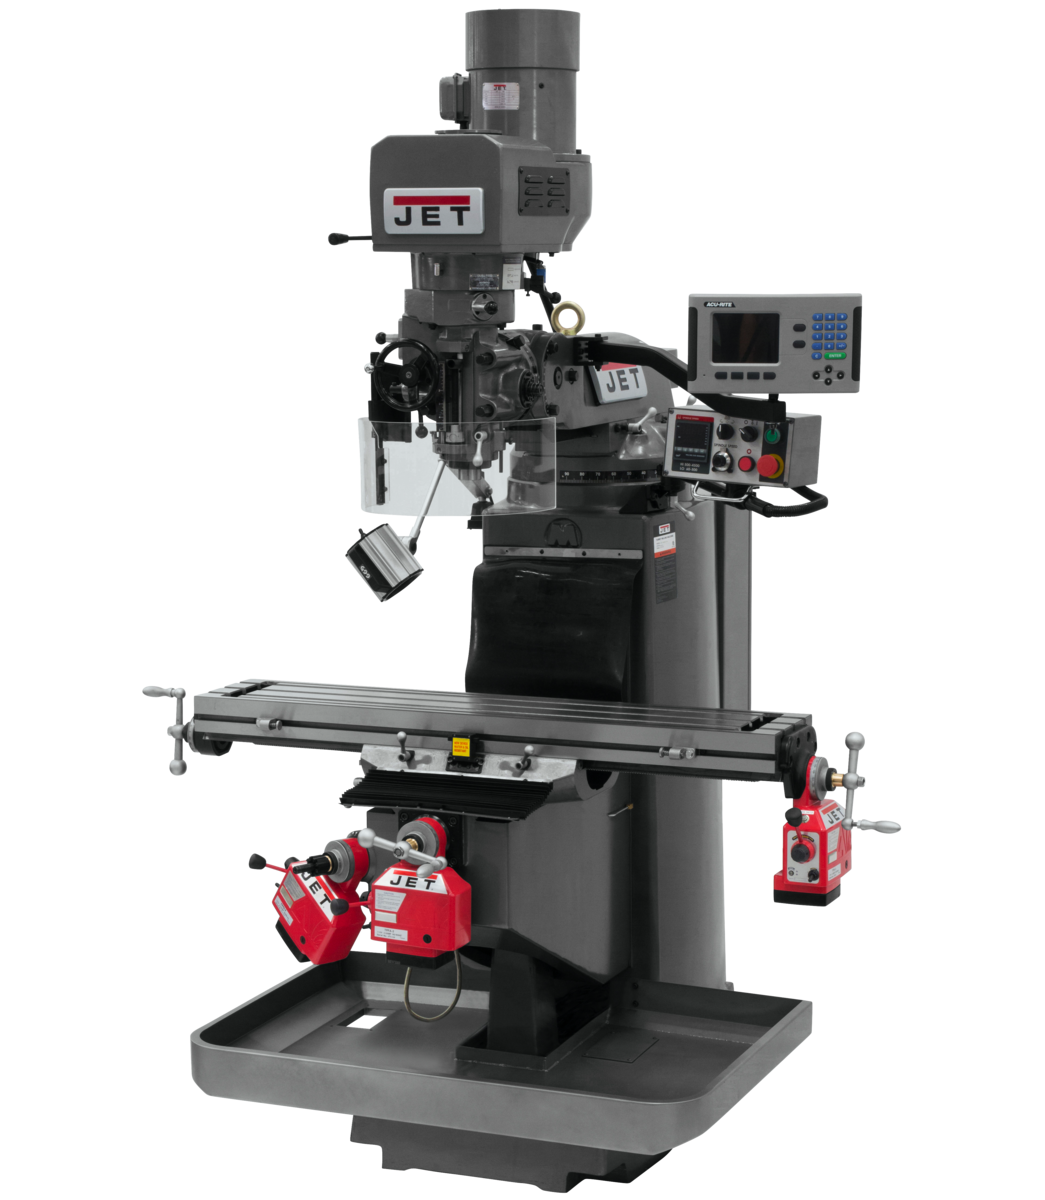 JTM-949EVS Mill With 3-Axis Acu-Rite 203 DRO (Quill) With X, Y and Z-Axis Powerfeeds